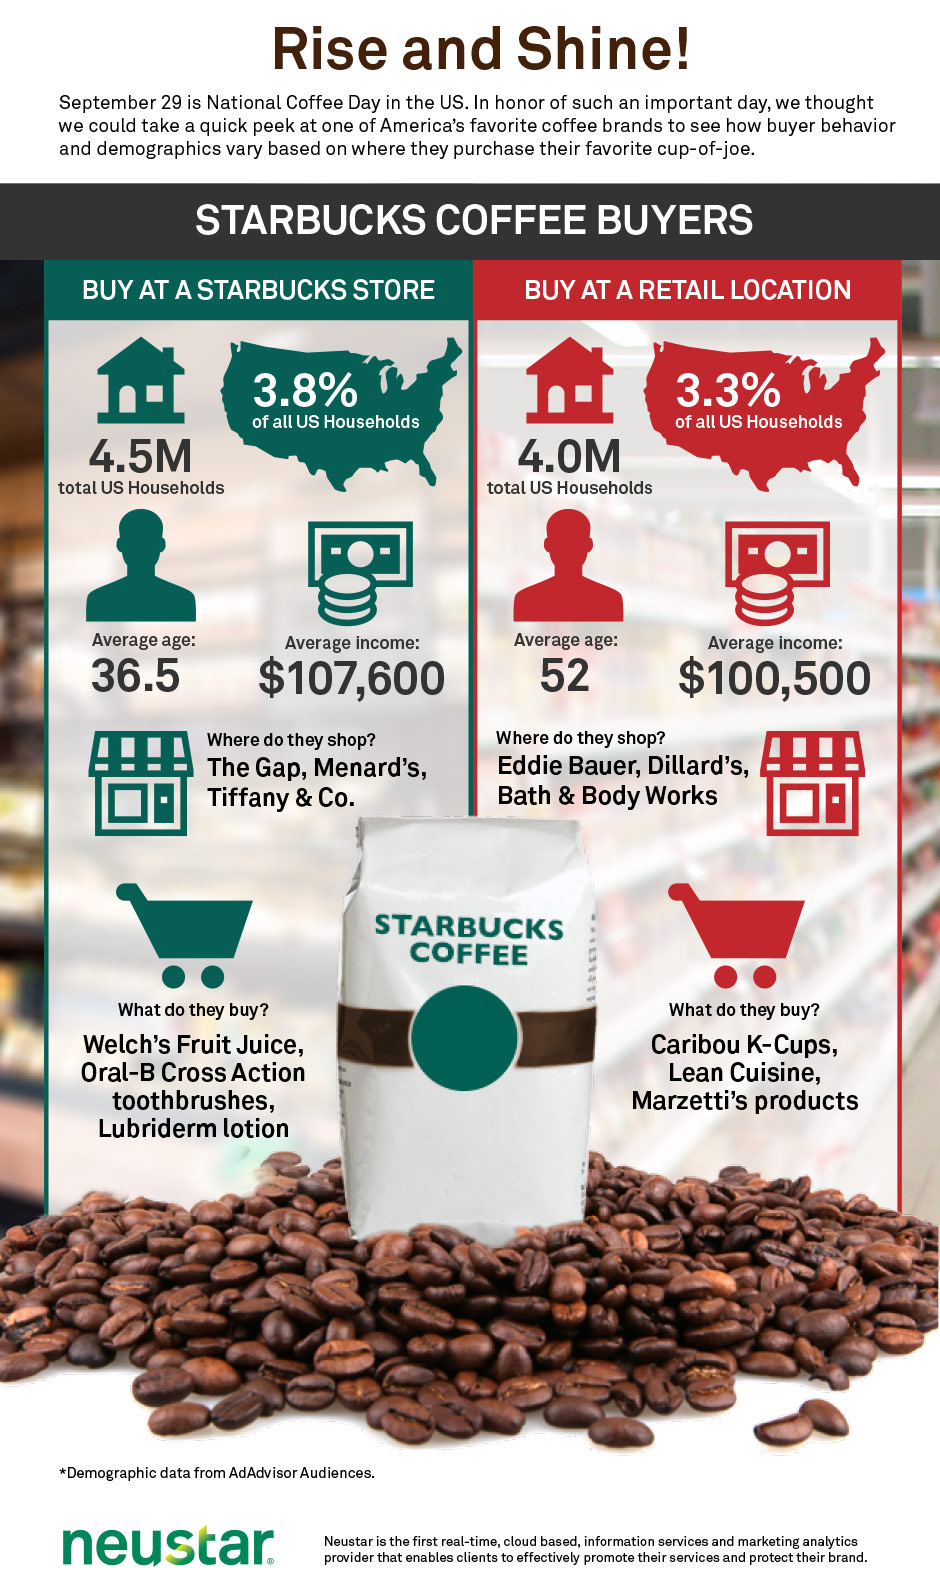 demographic analysis of starbucks Pestle analysis of starbucks discusses how external factors have affected business necessary steps to retain its consumer base and gain consumer loyalty.